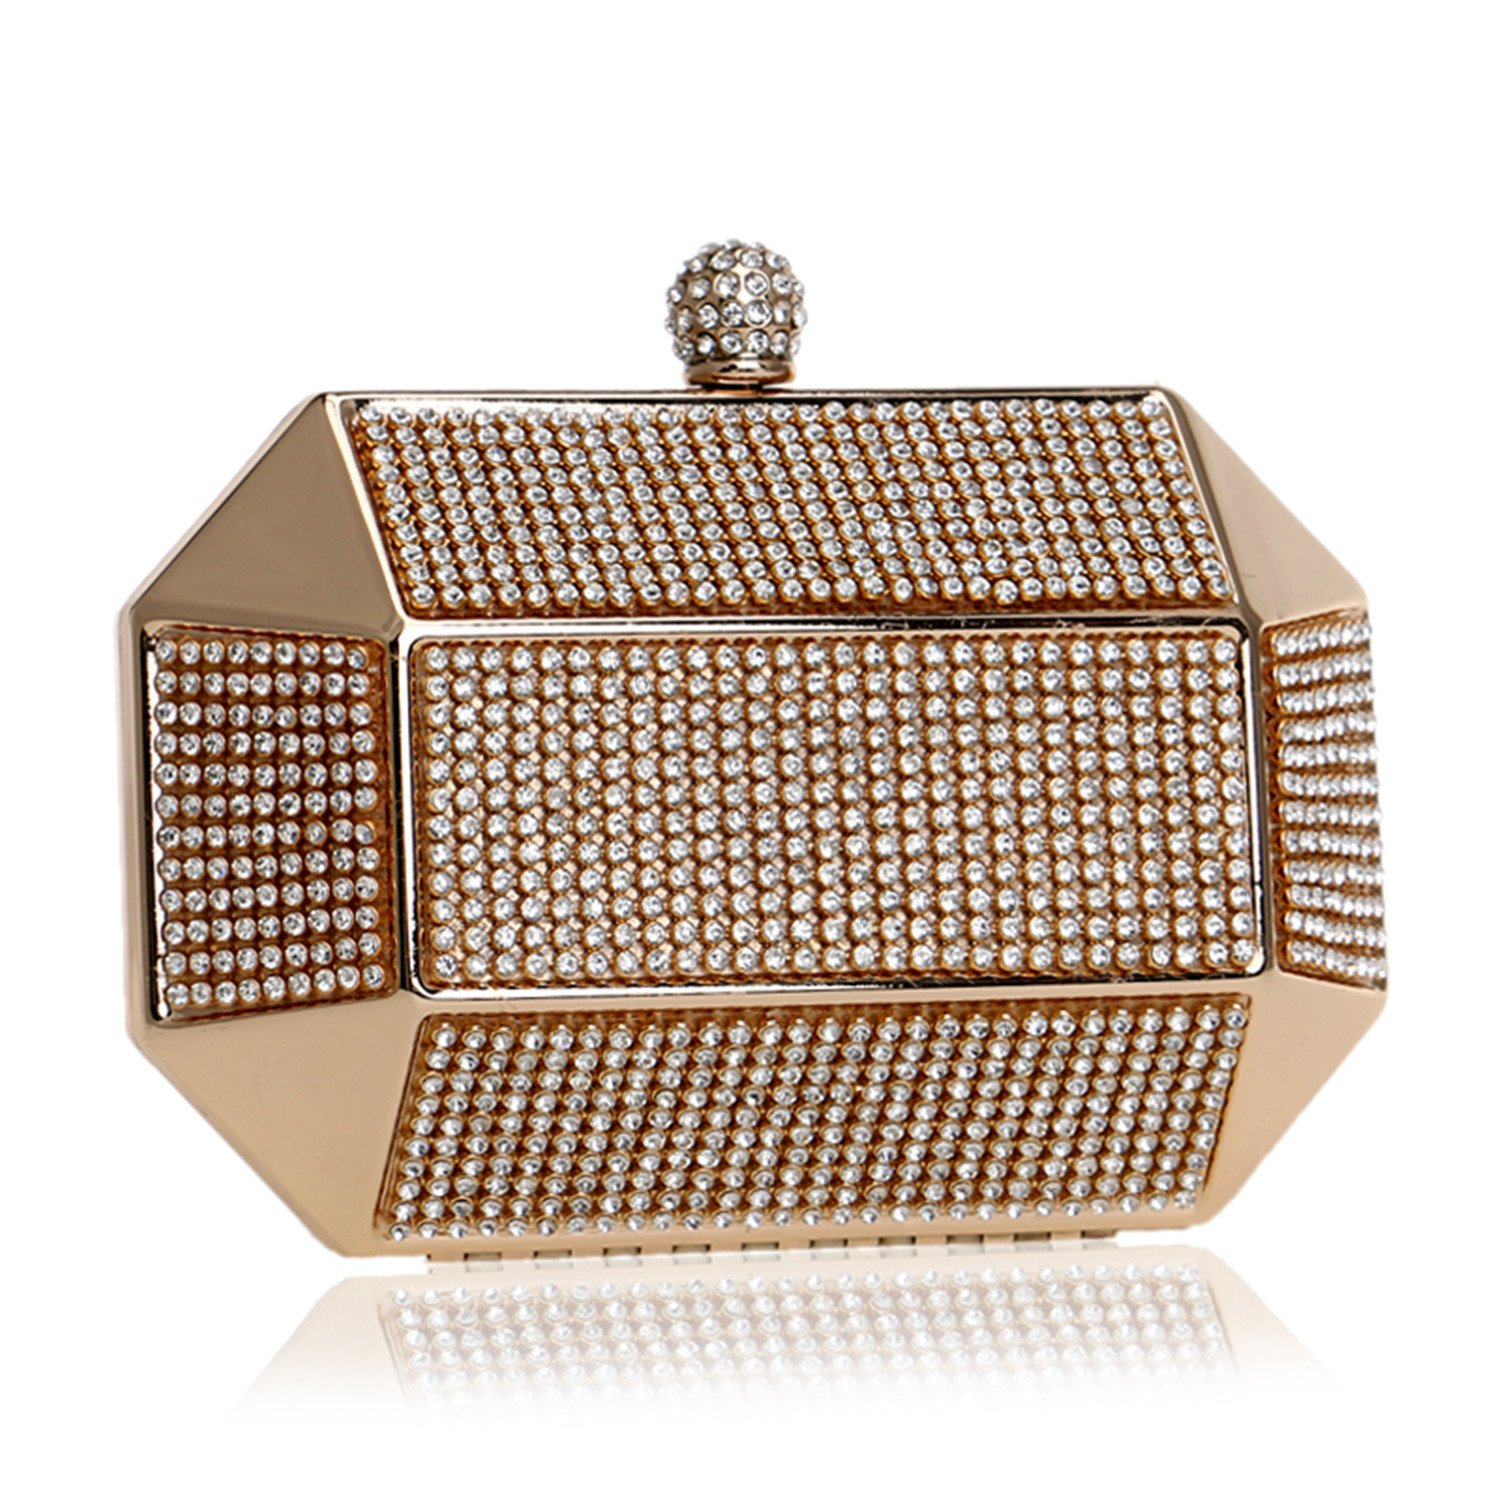 Women Evening Bags Metal Fashion Luxurious Lady Clutch Crystal Chain Shoulder Handbags For Wedding Party